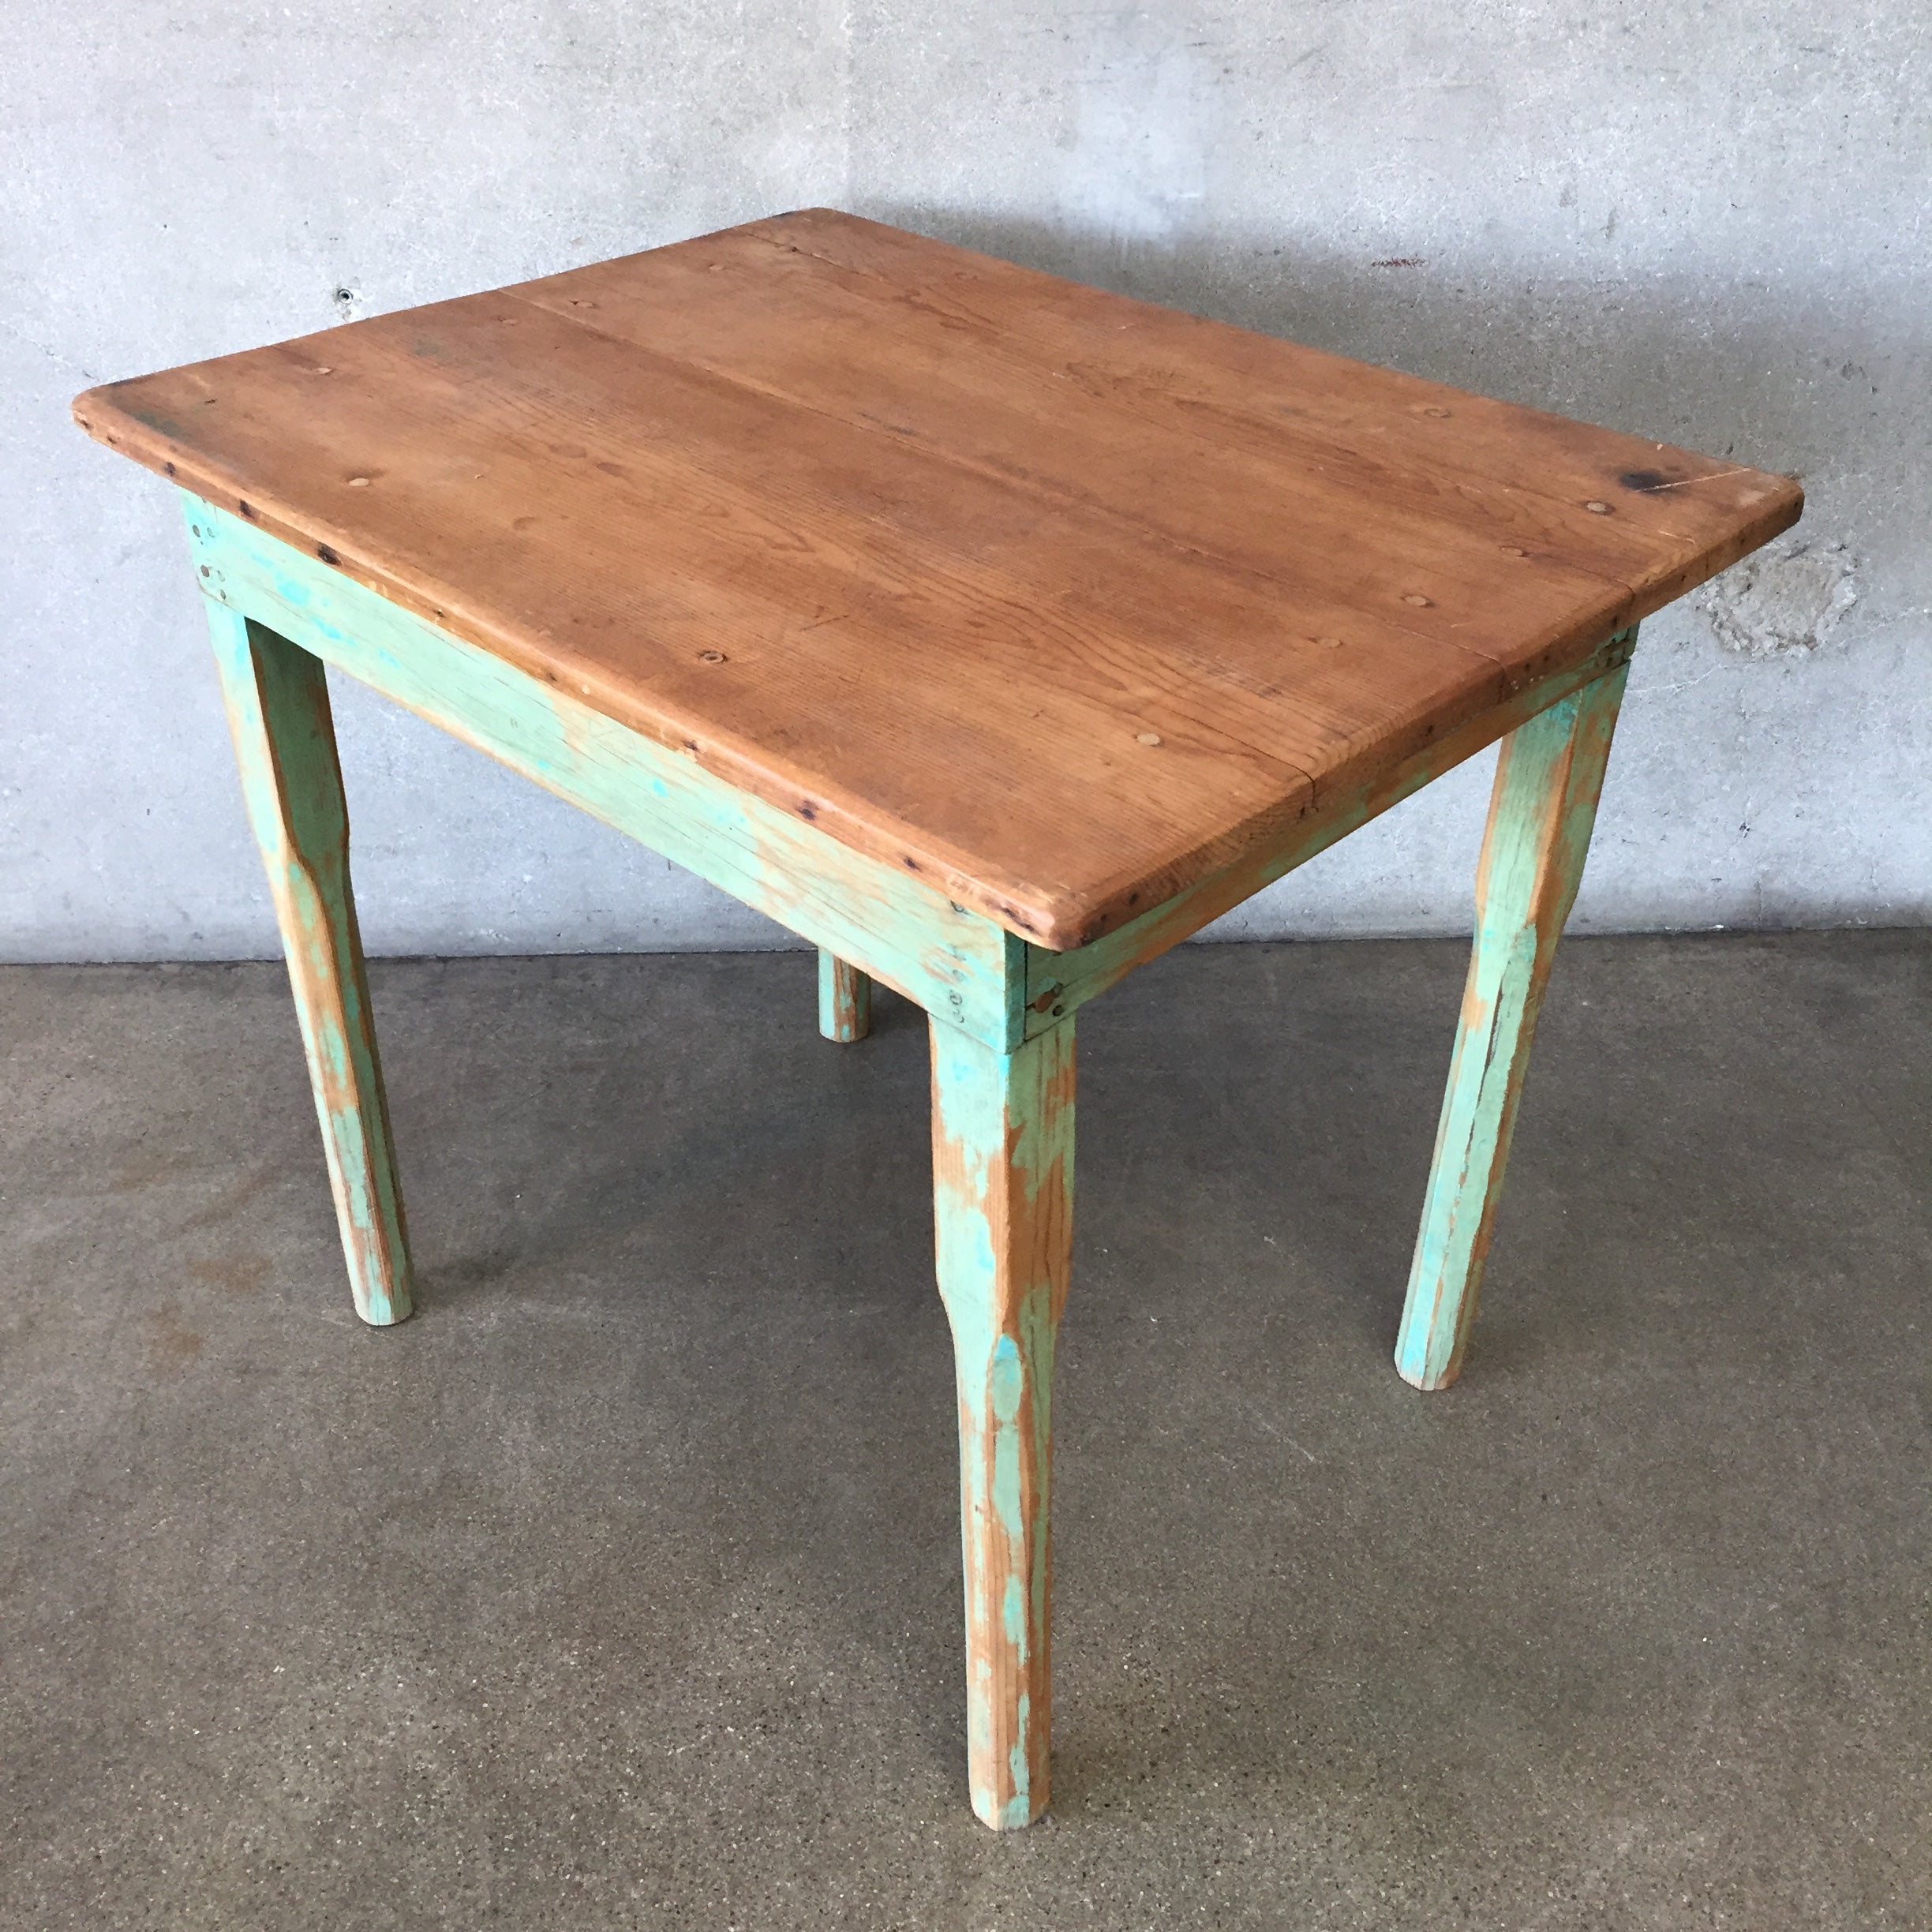 Excellent Vintage Green Rustic Mexican Wood Table Bralicious Painted Fabric Chair Ideas Braliciousco